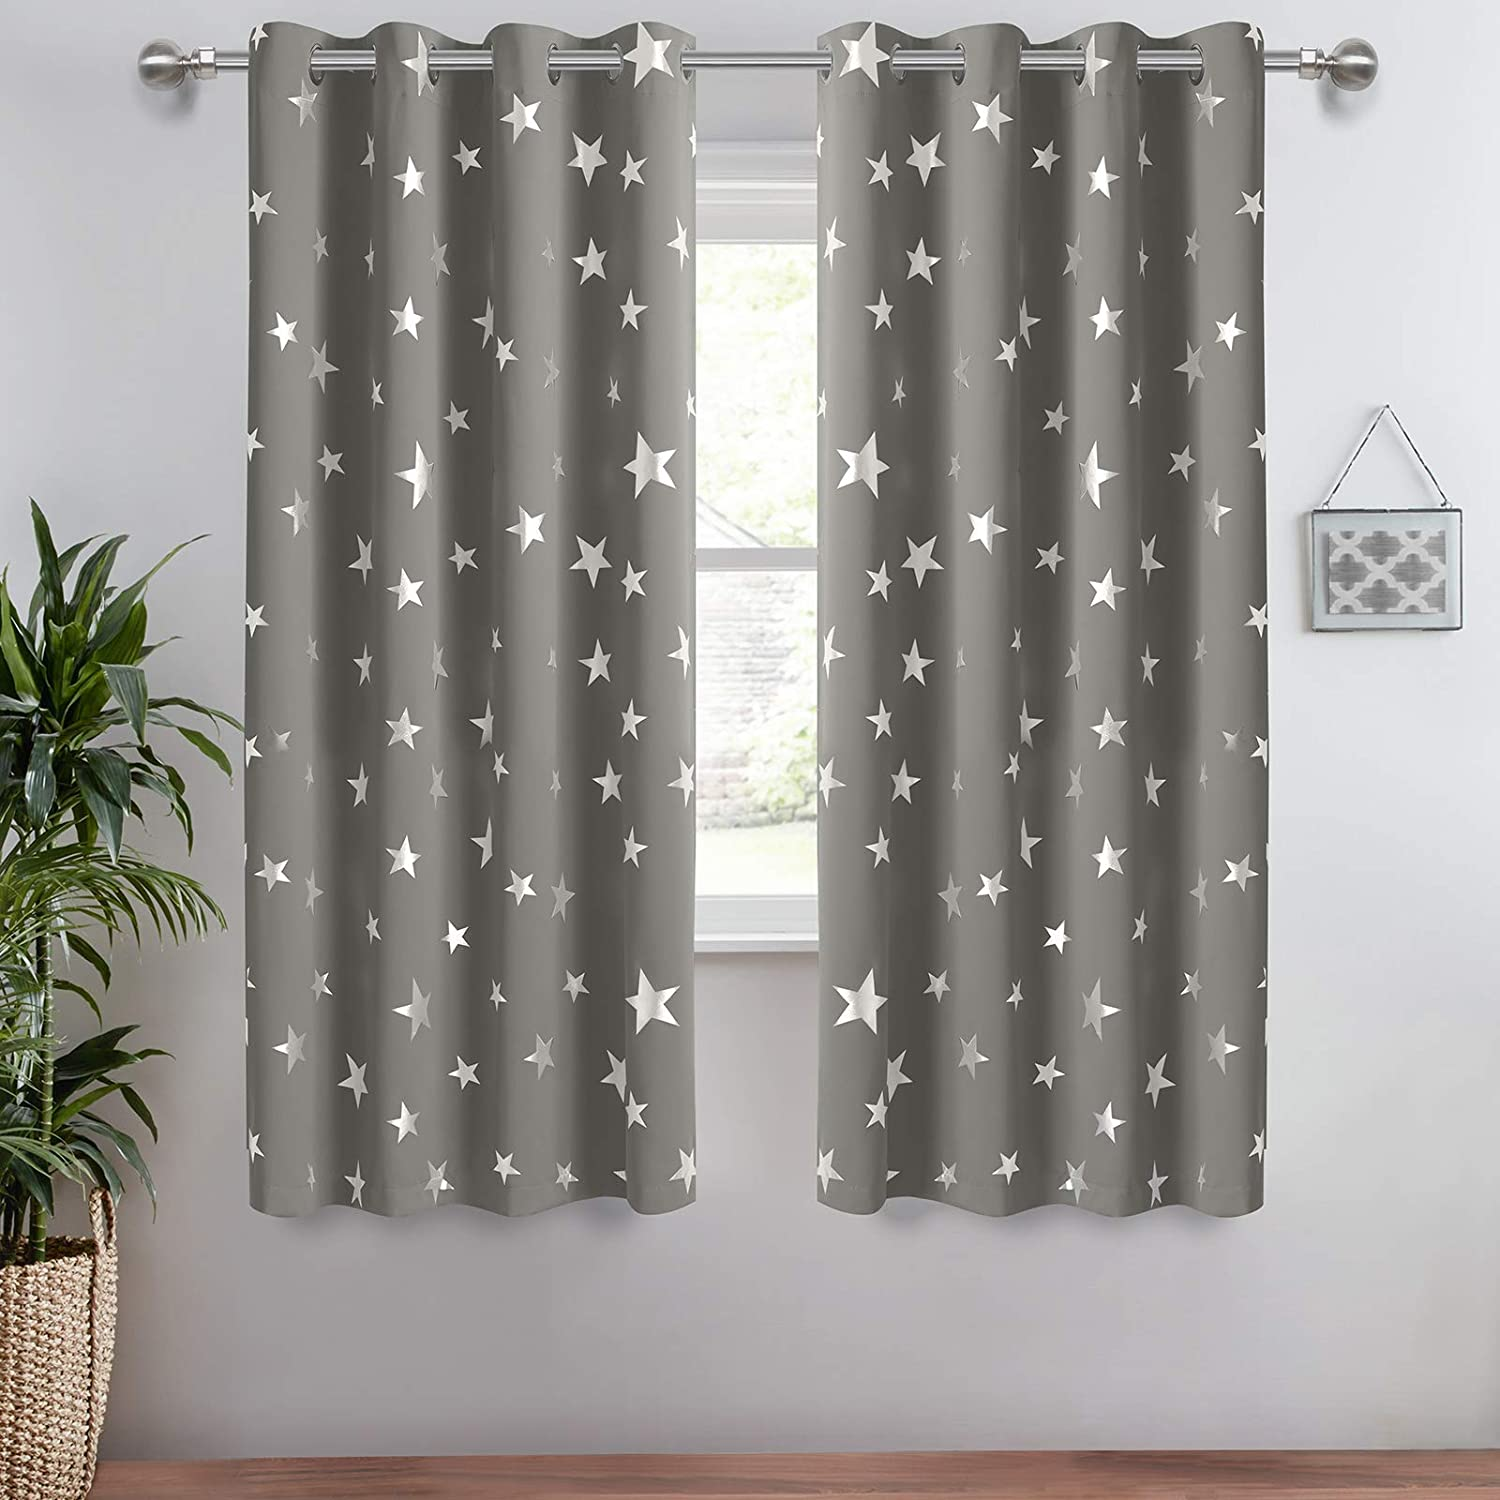 Anjee Eyelet Blackout Curtains Silver Stars Thermal Insulated Curtains 2 Panels 52 x 45 inch for Children